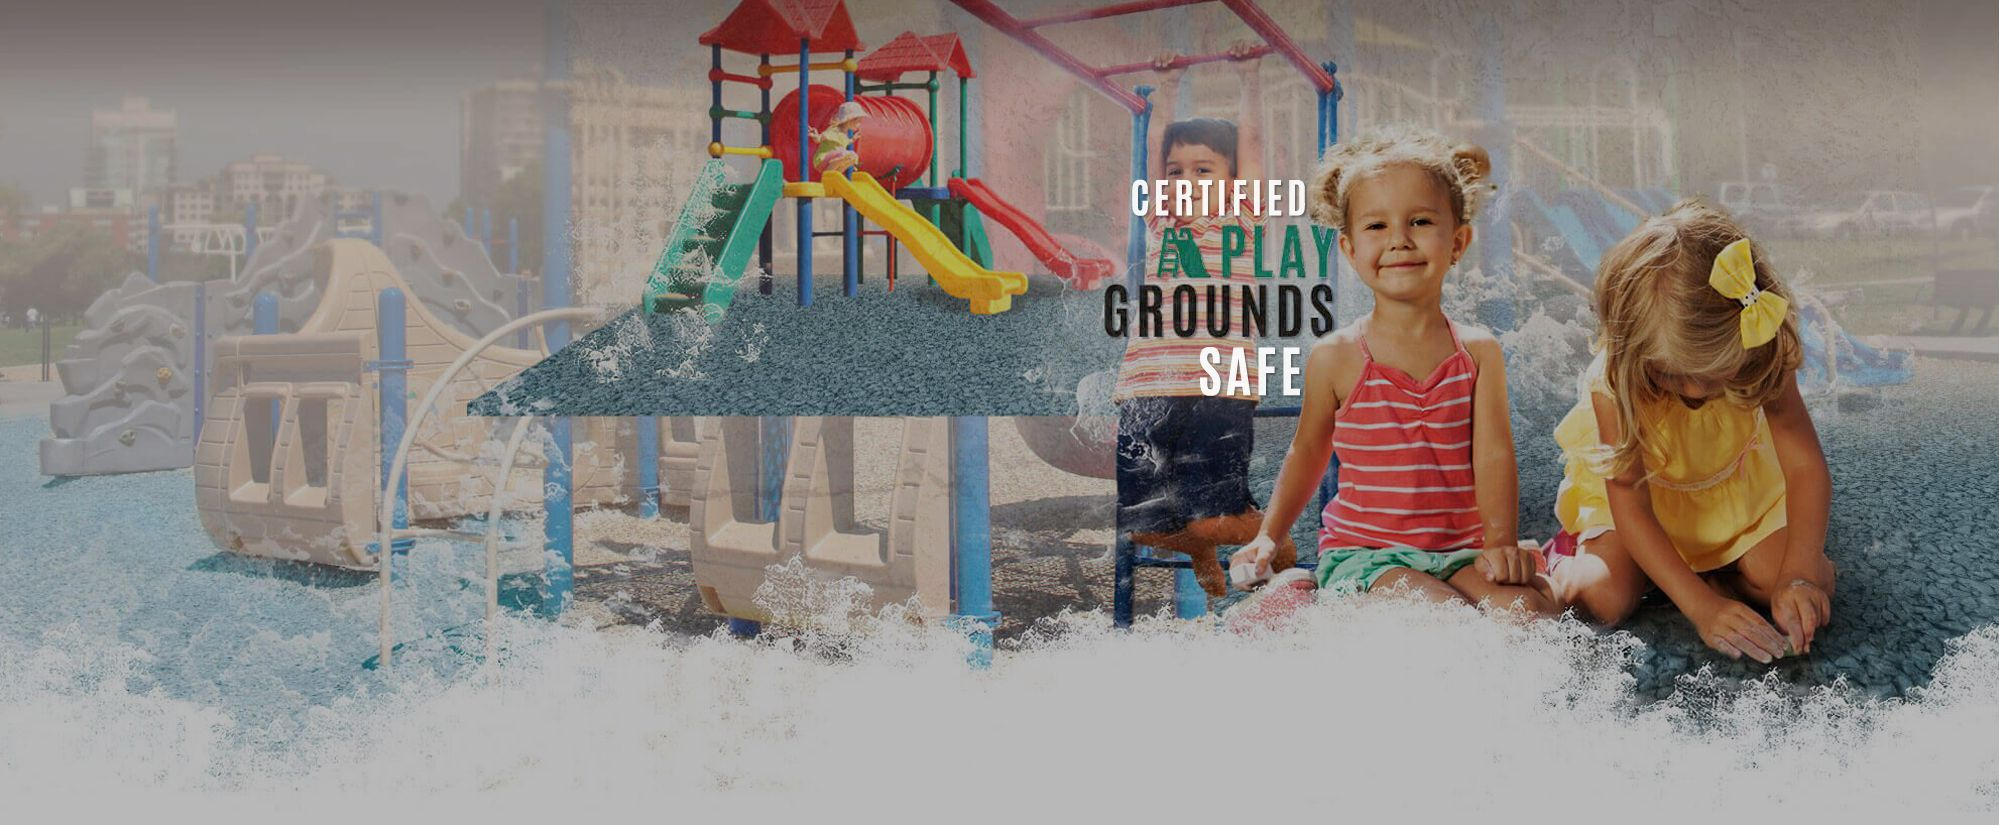 Buy Rubber Mulch for Play Grounds